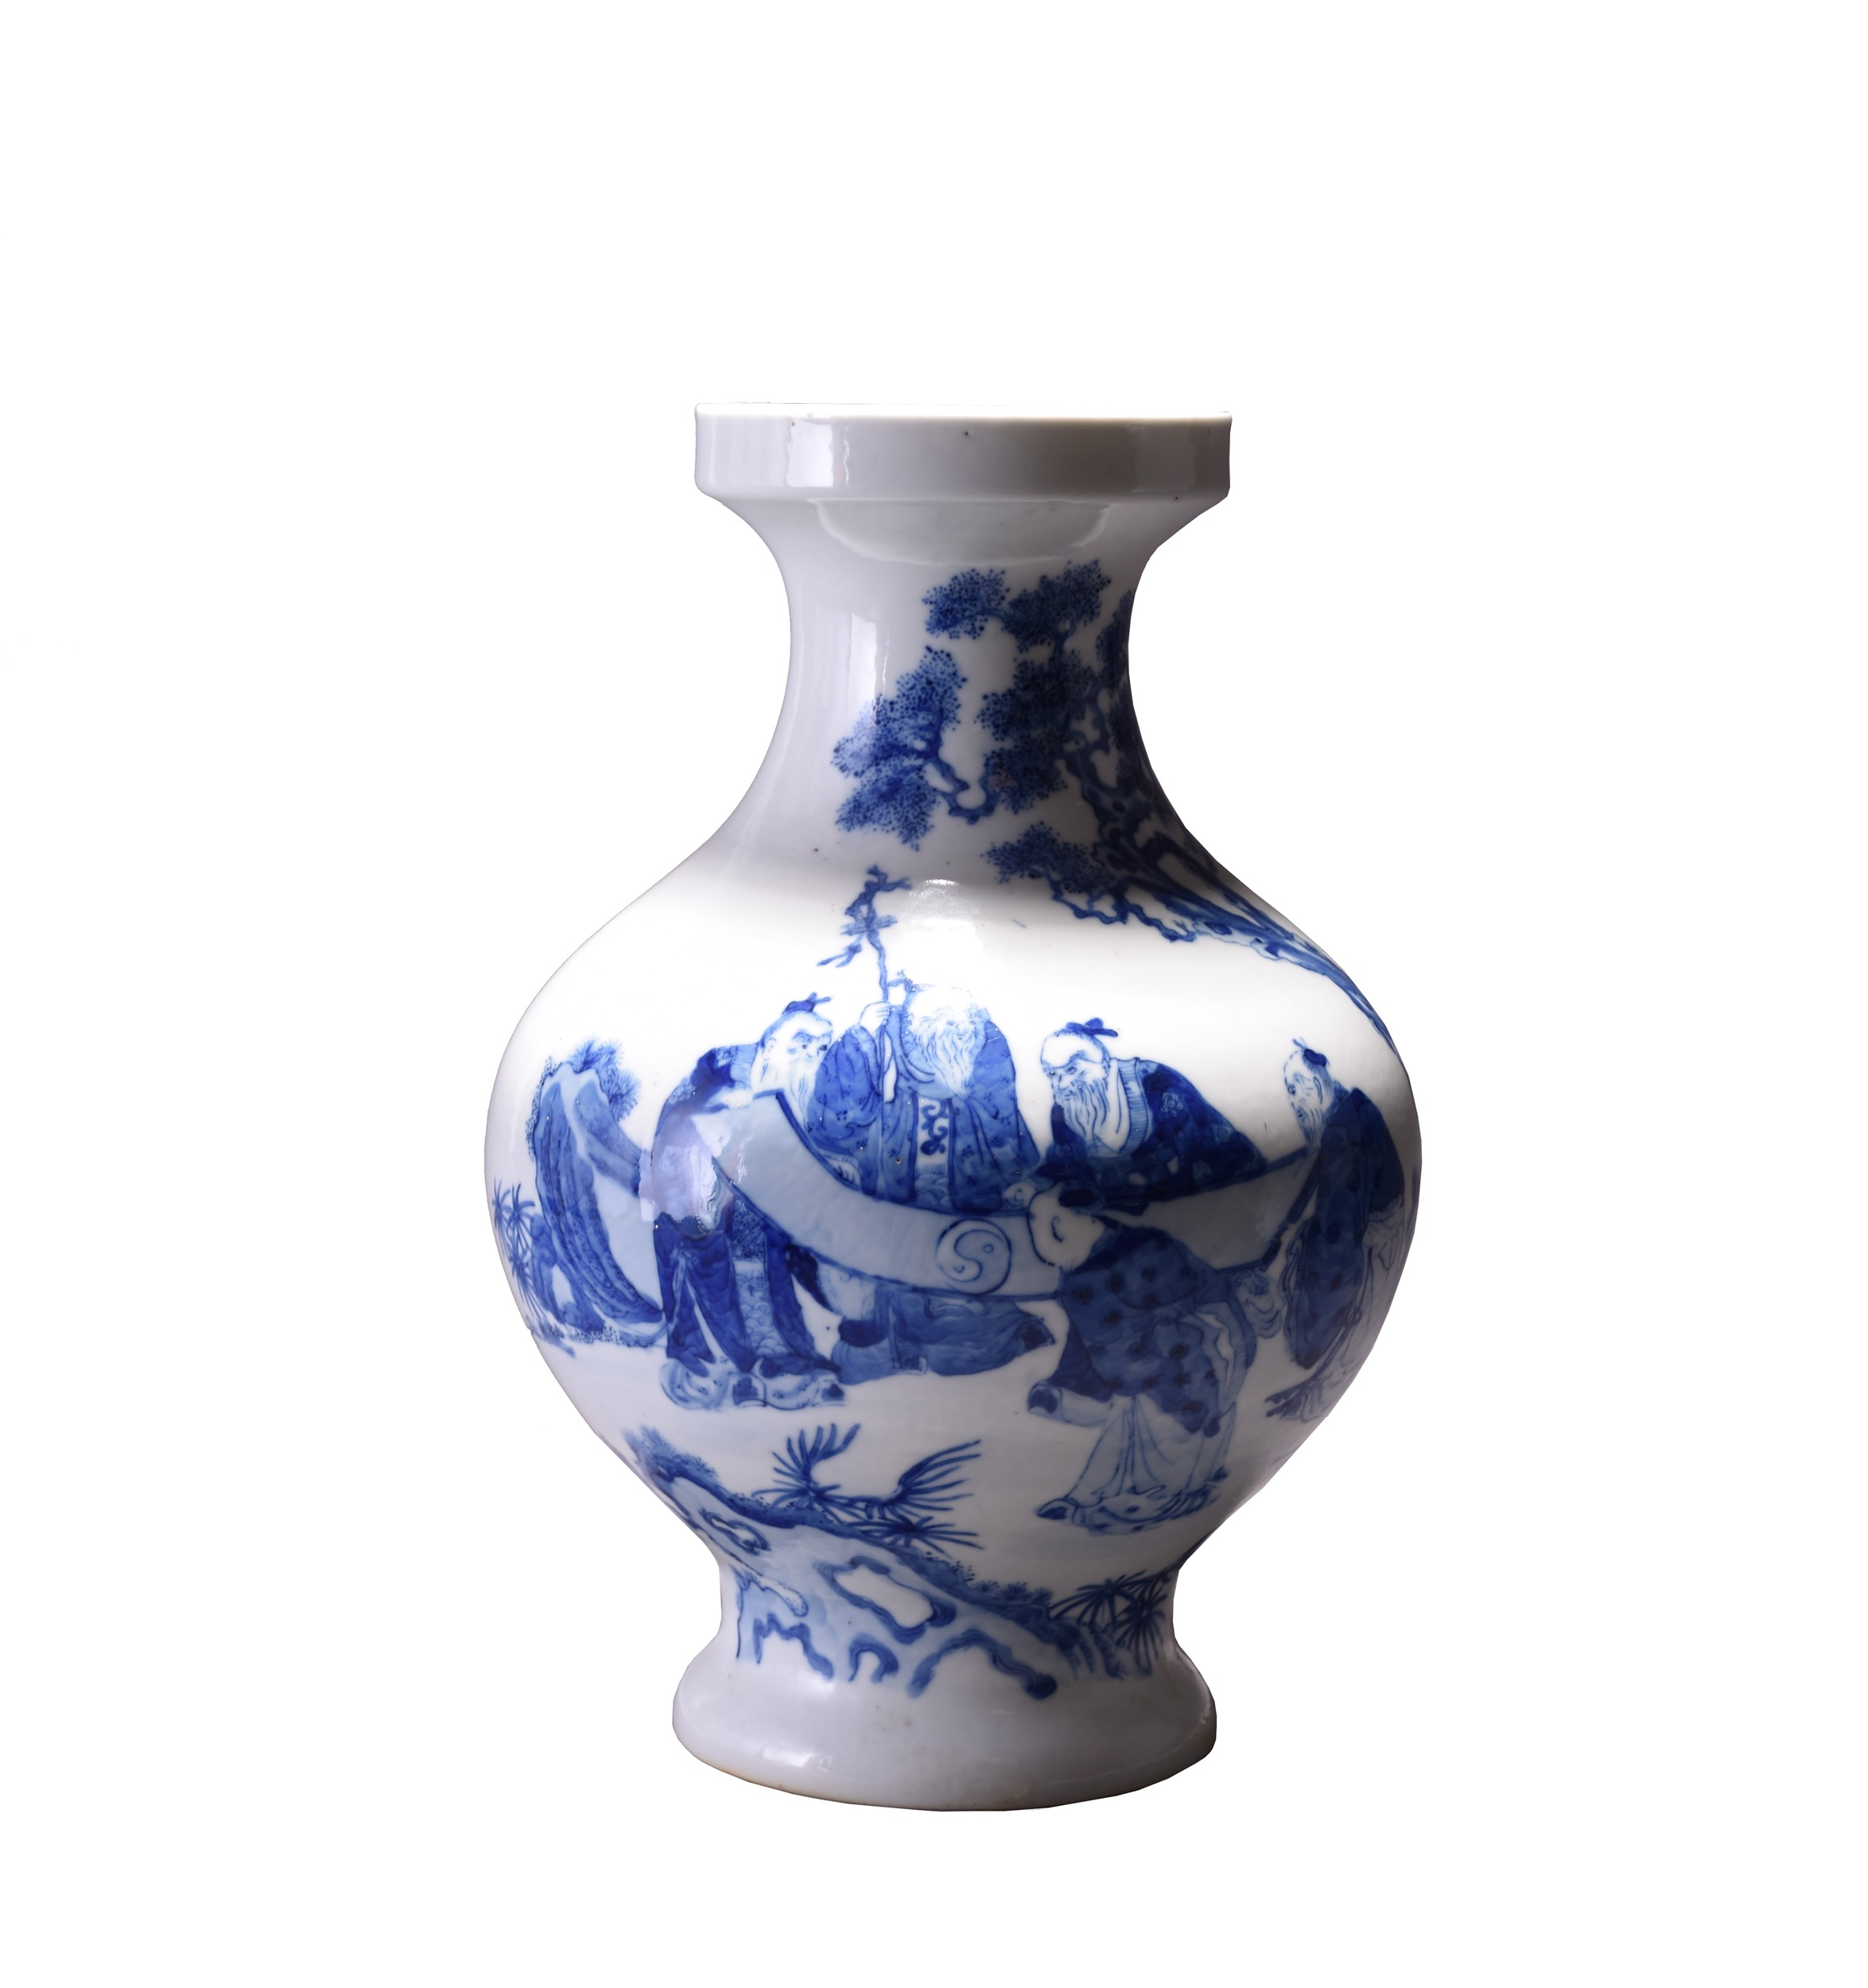 A beautiful Qianlong mark and period blue and white vase decorated with scholars. Estimate: £1,000-1,500